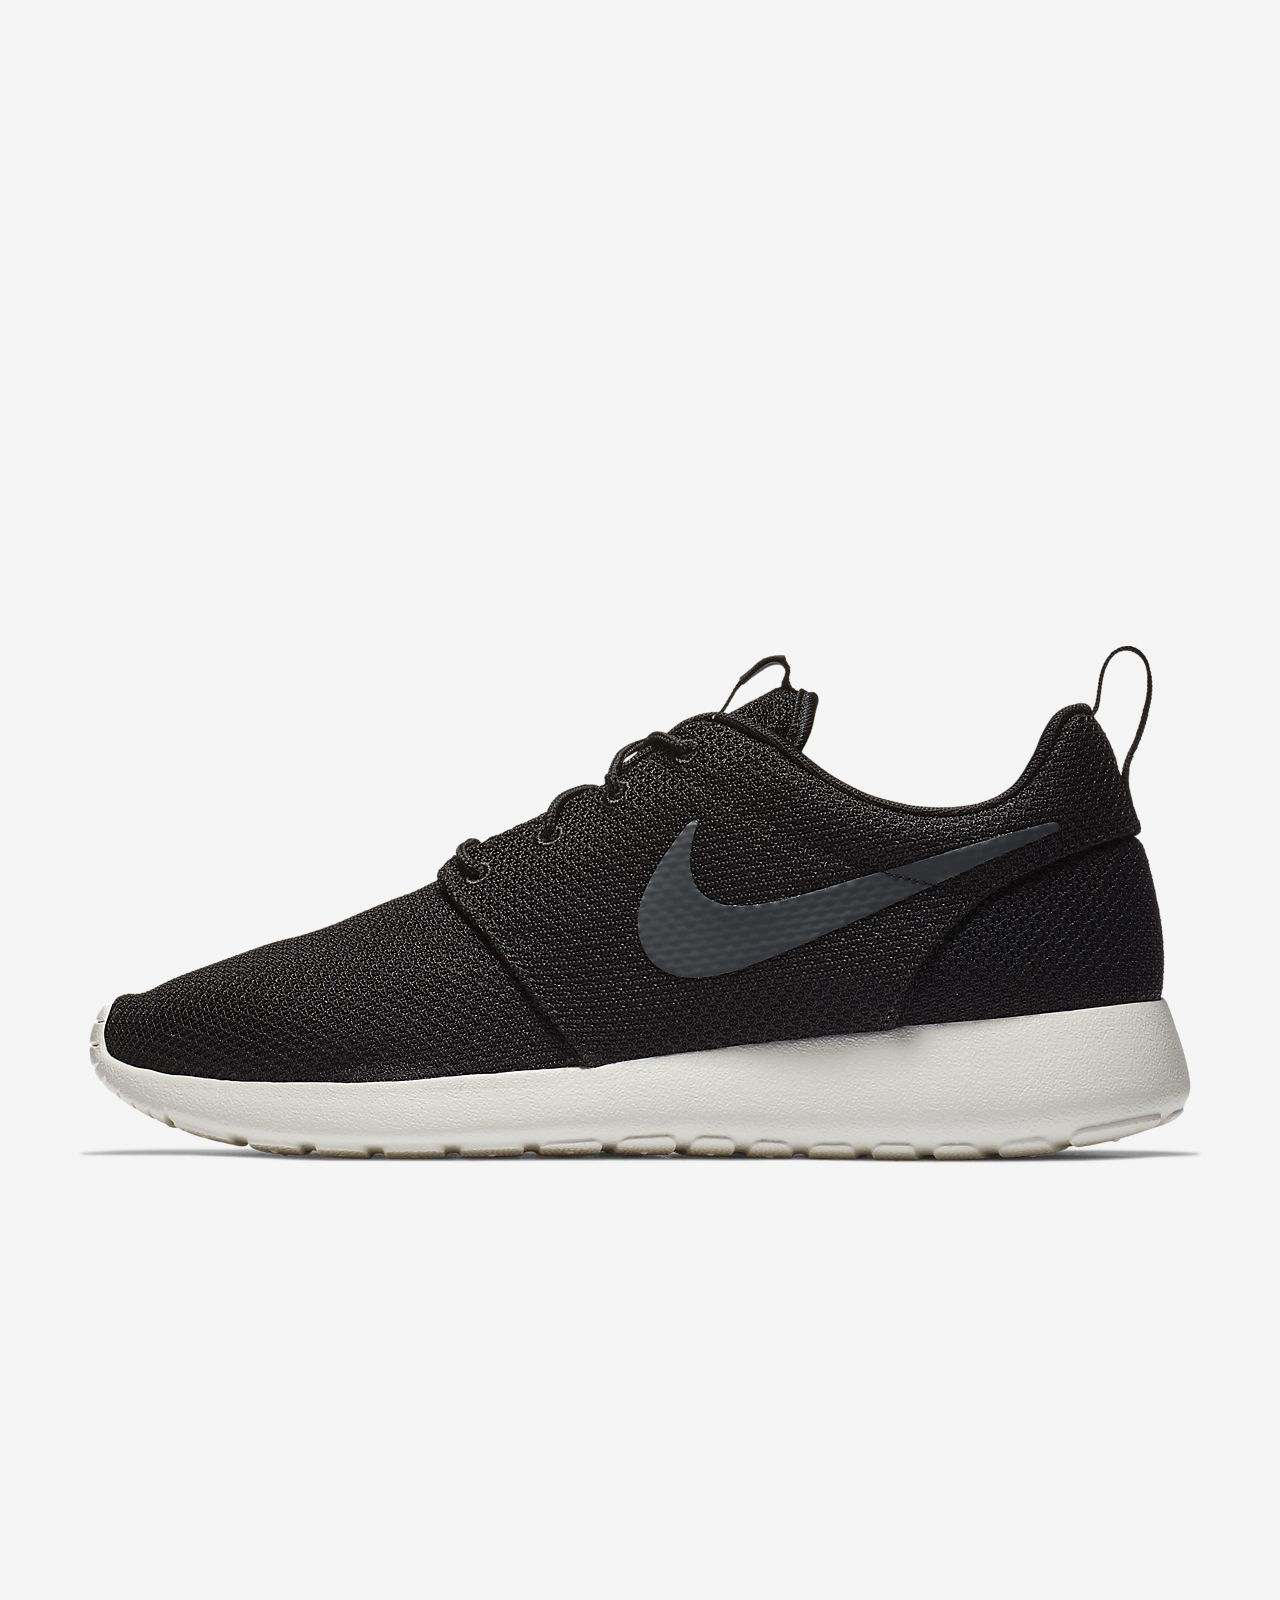 09bba5e9a939 canada nike roshe one all black mens d2286 dc82c